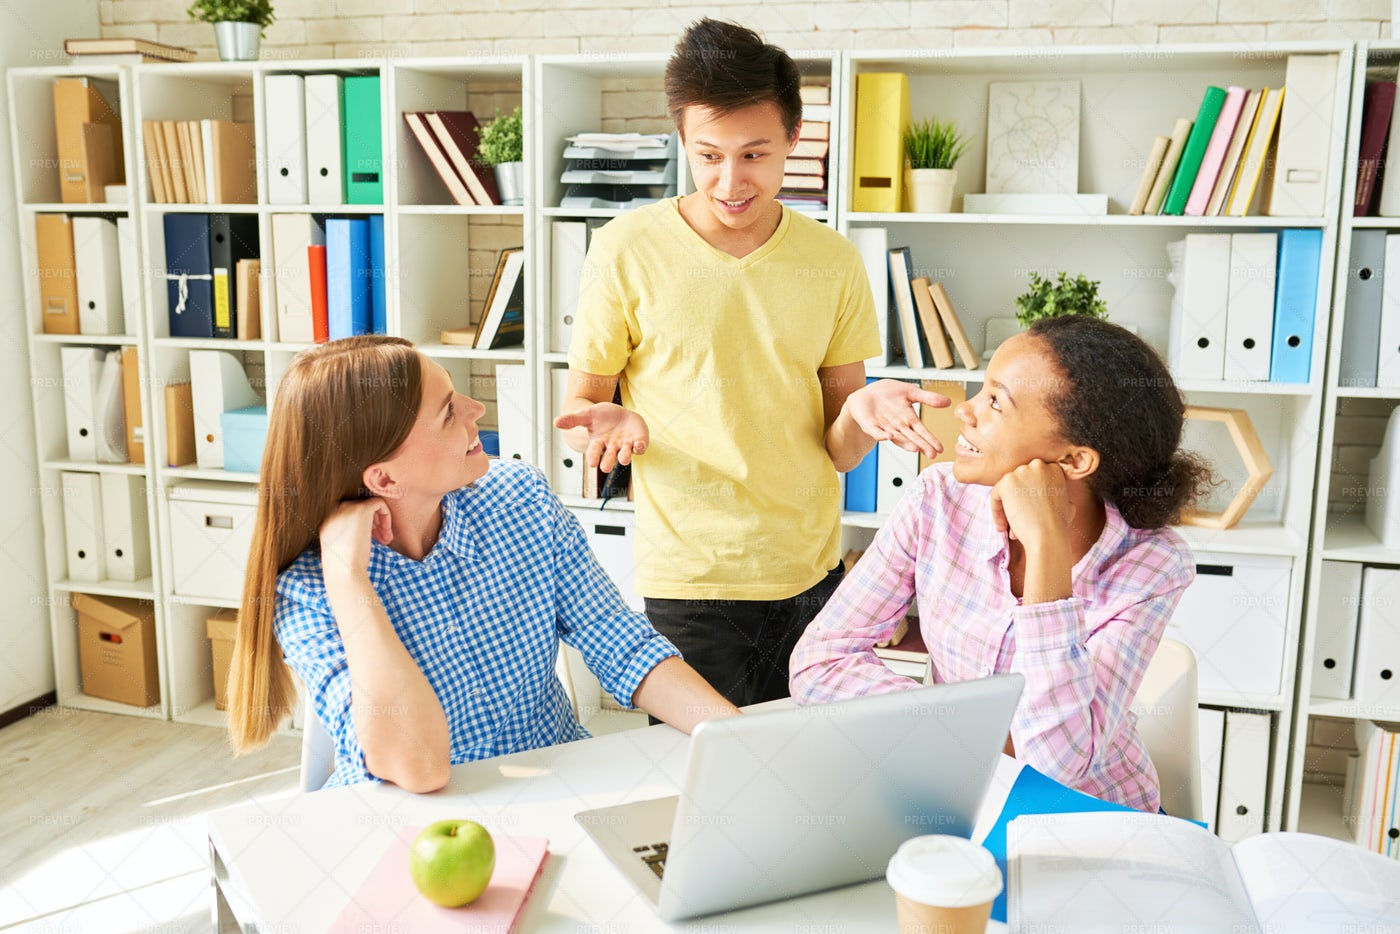 Group Project In College: Stock Photos